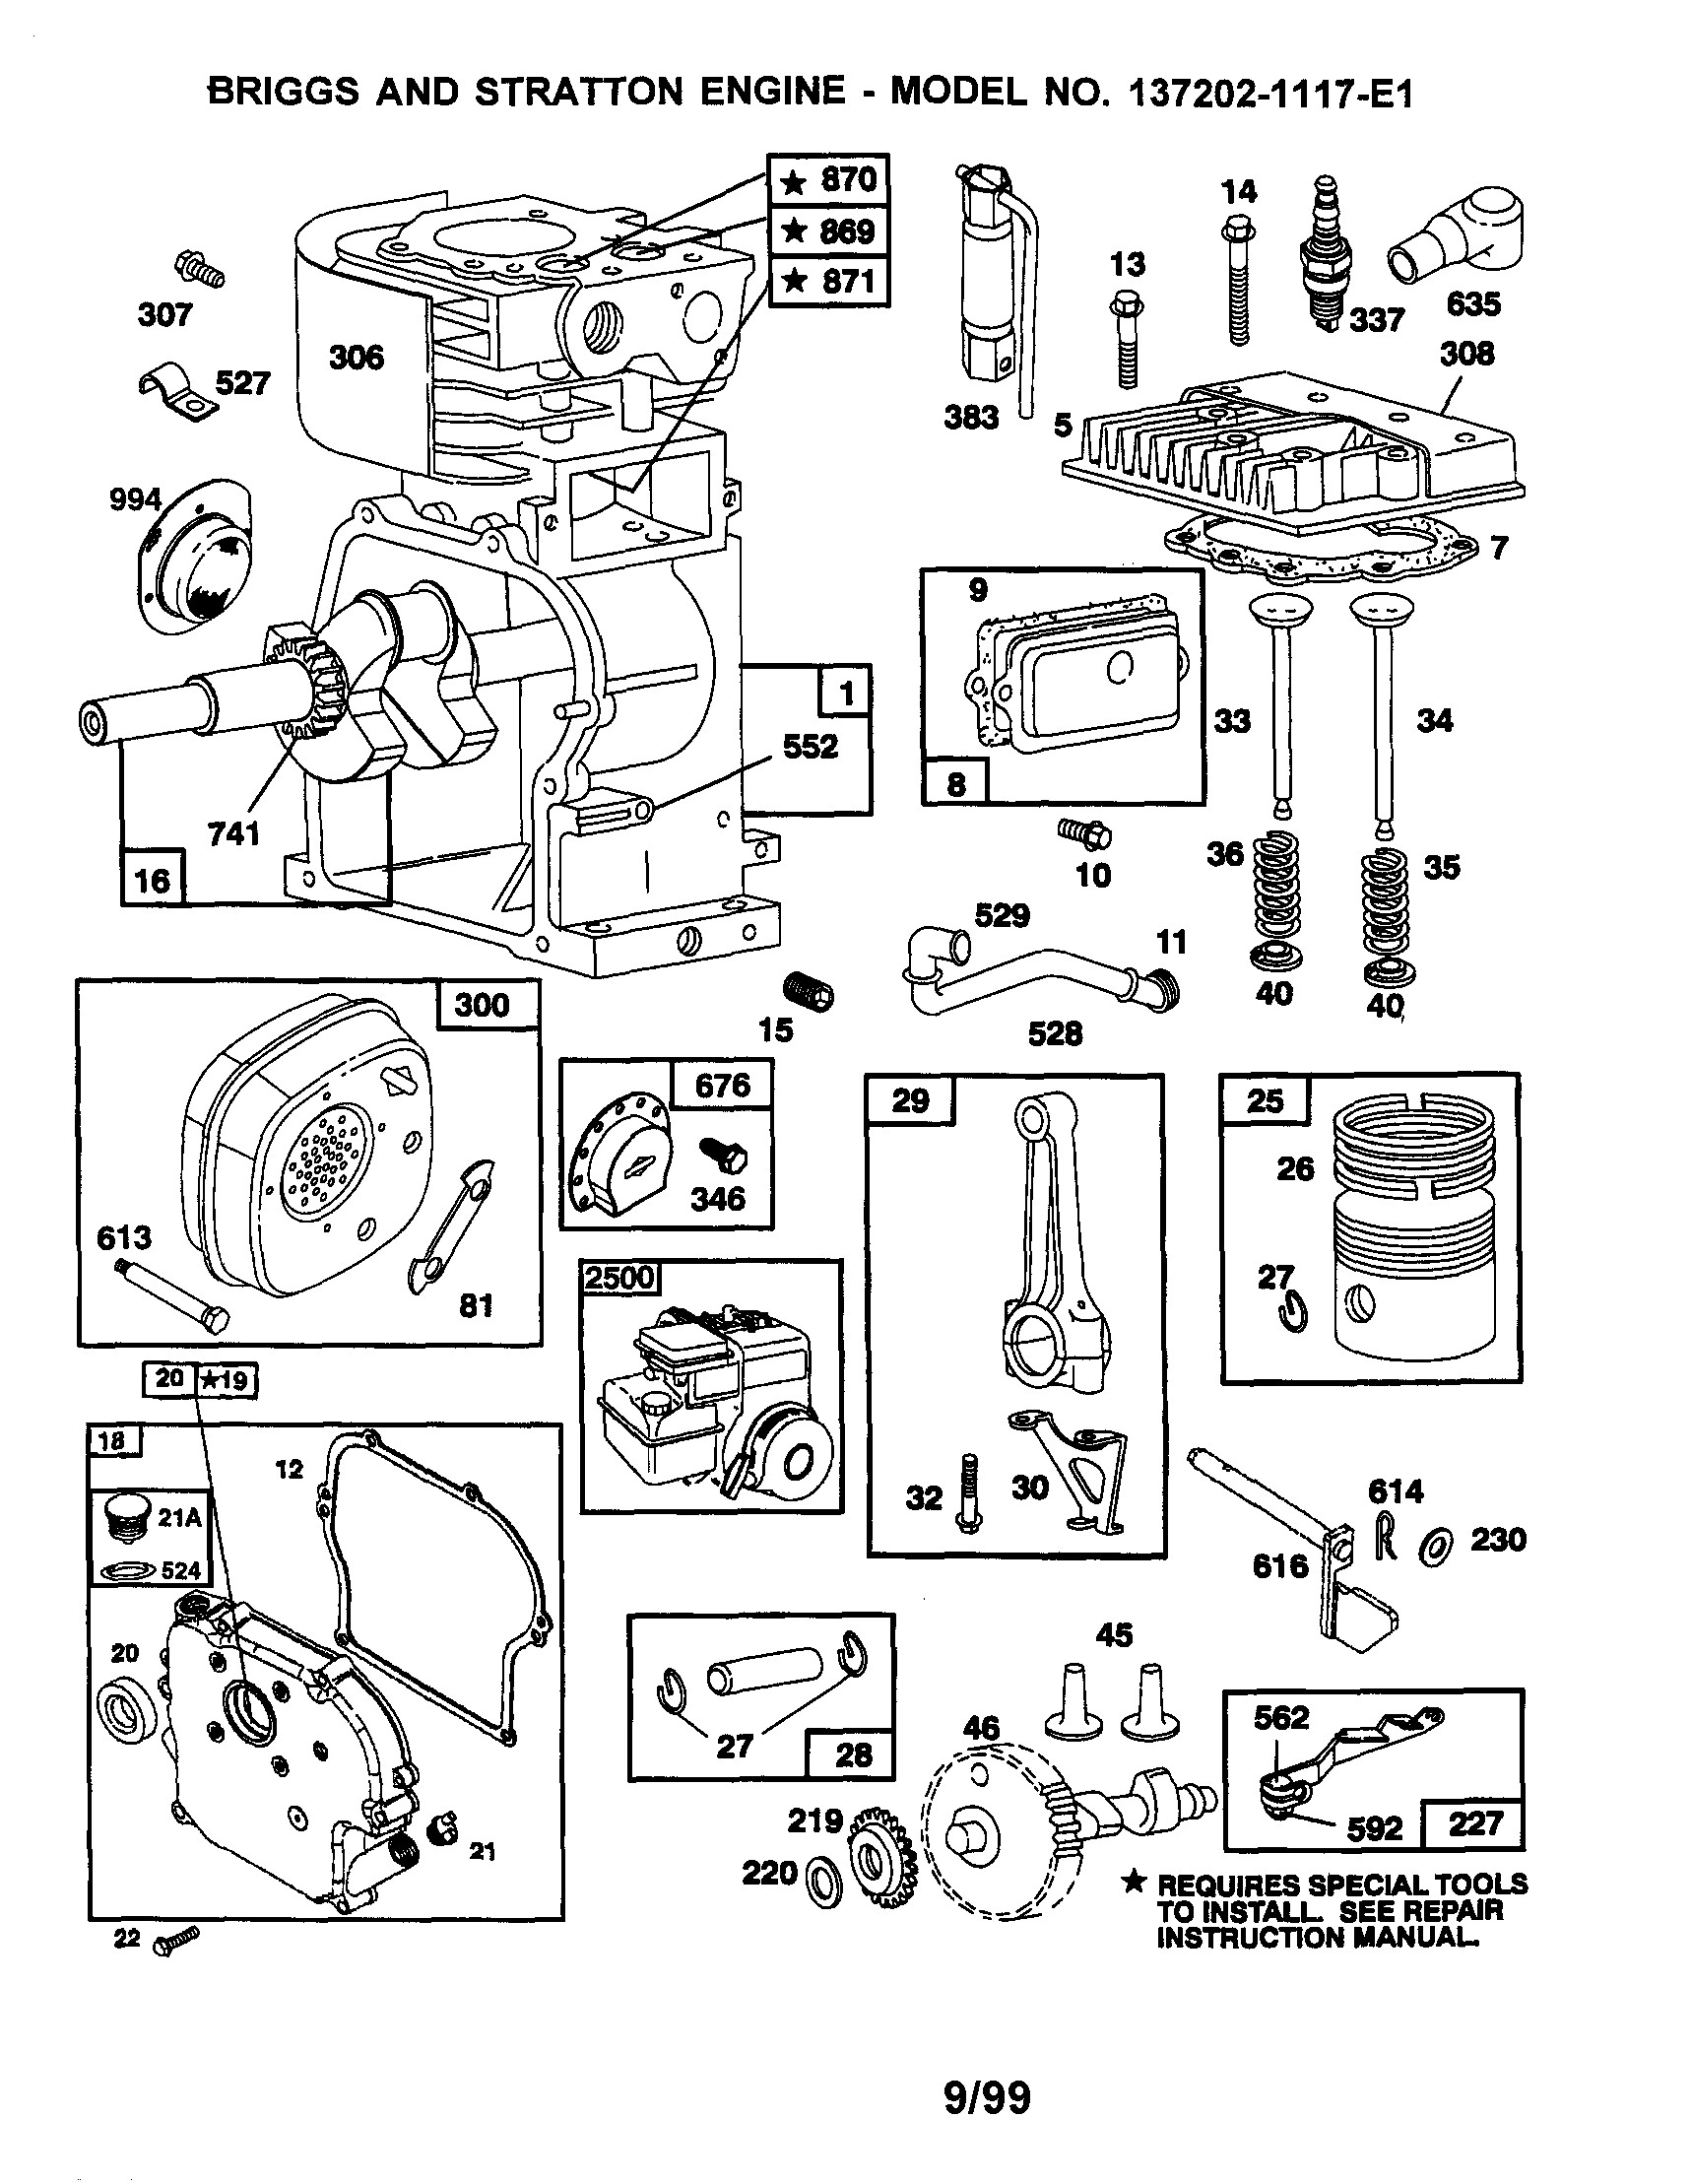 hight resolution of 10 5 hp briggs stratton engine parts diagram wiring wiring diagram 10 0 briggs stratton motor wiring diagram